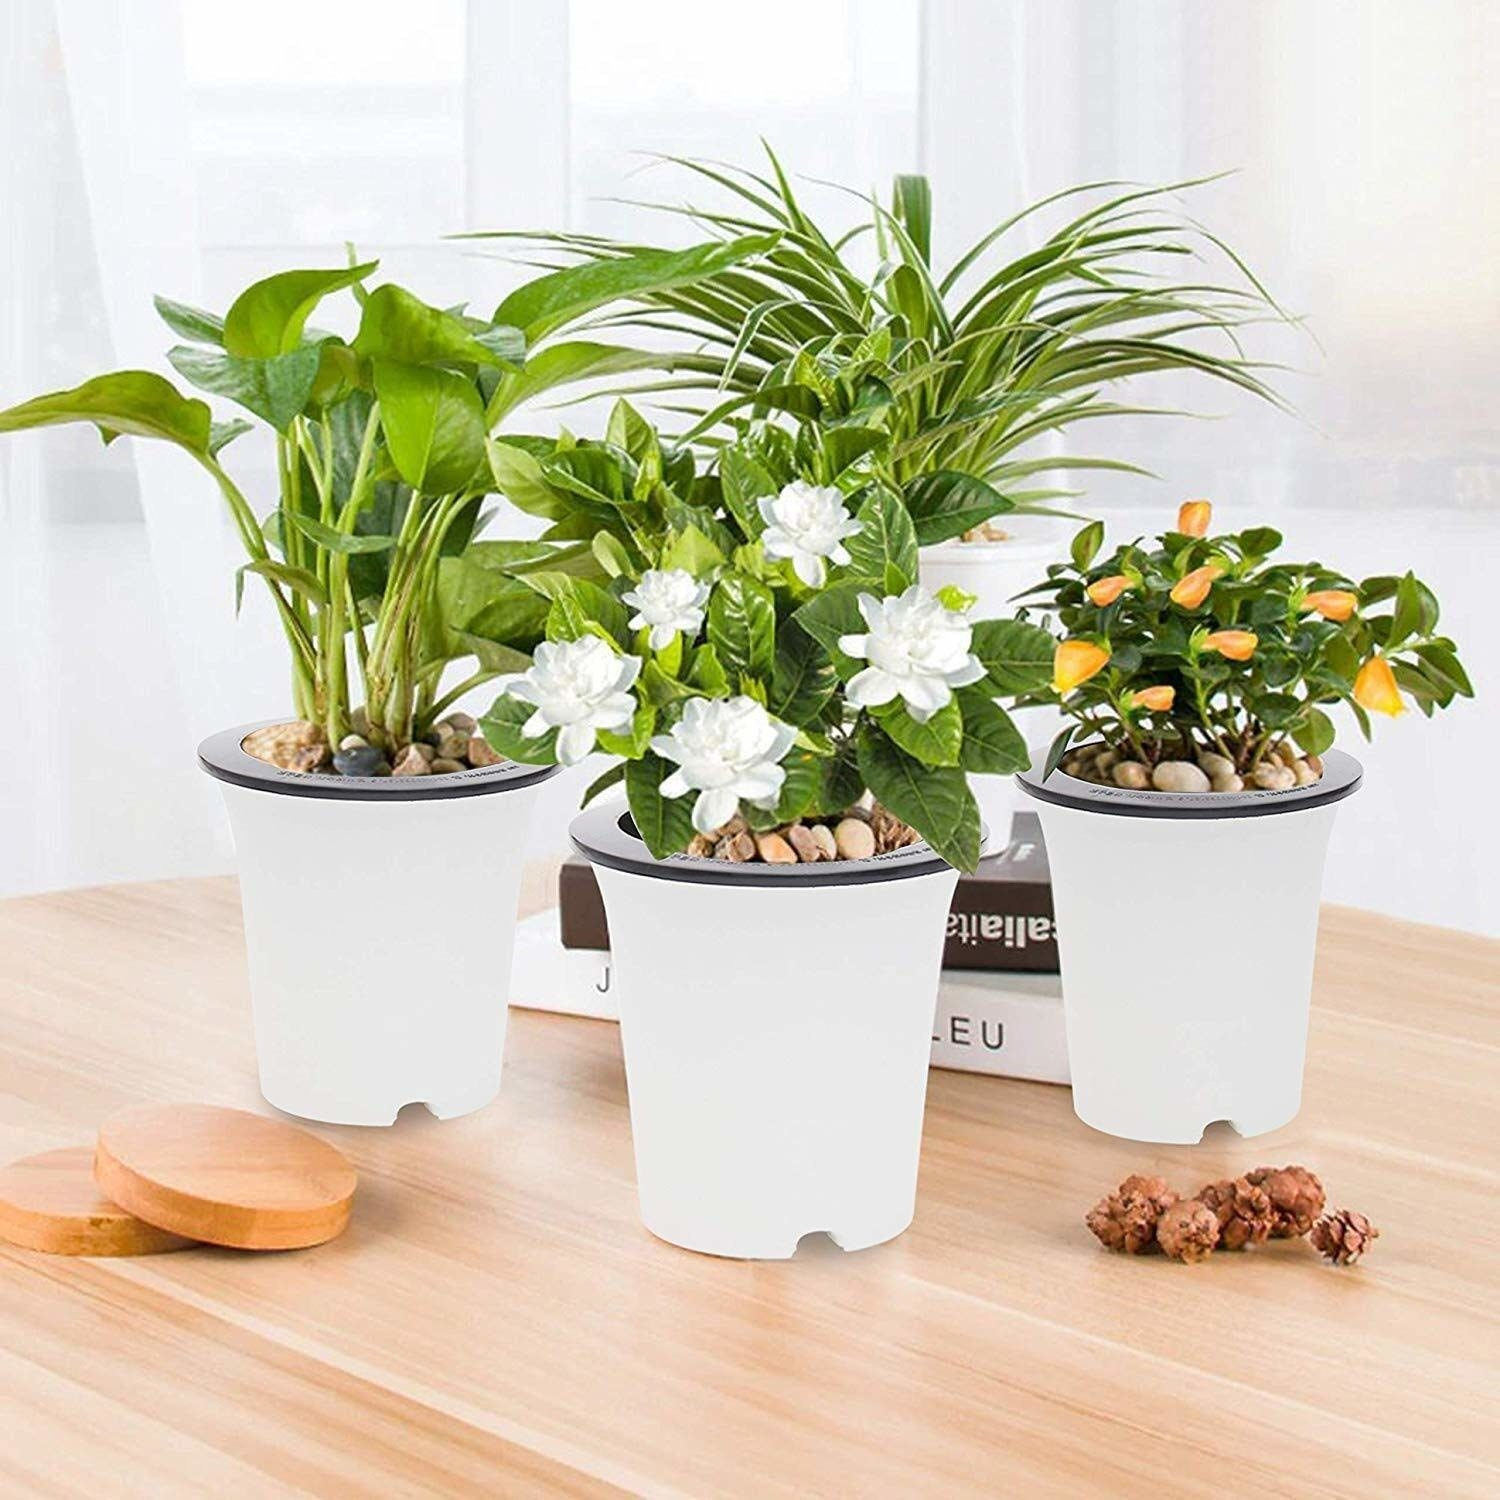 Four self-watering pots with plants in them